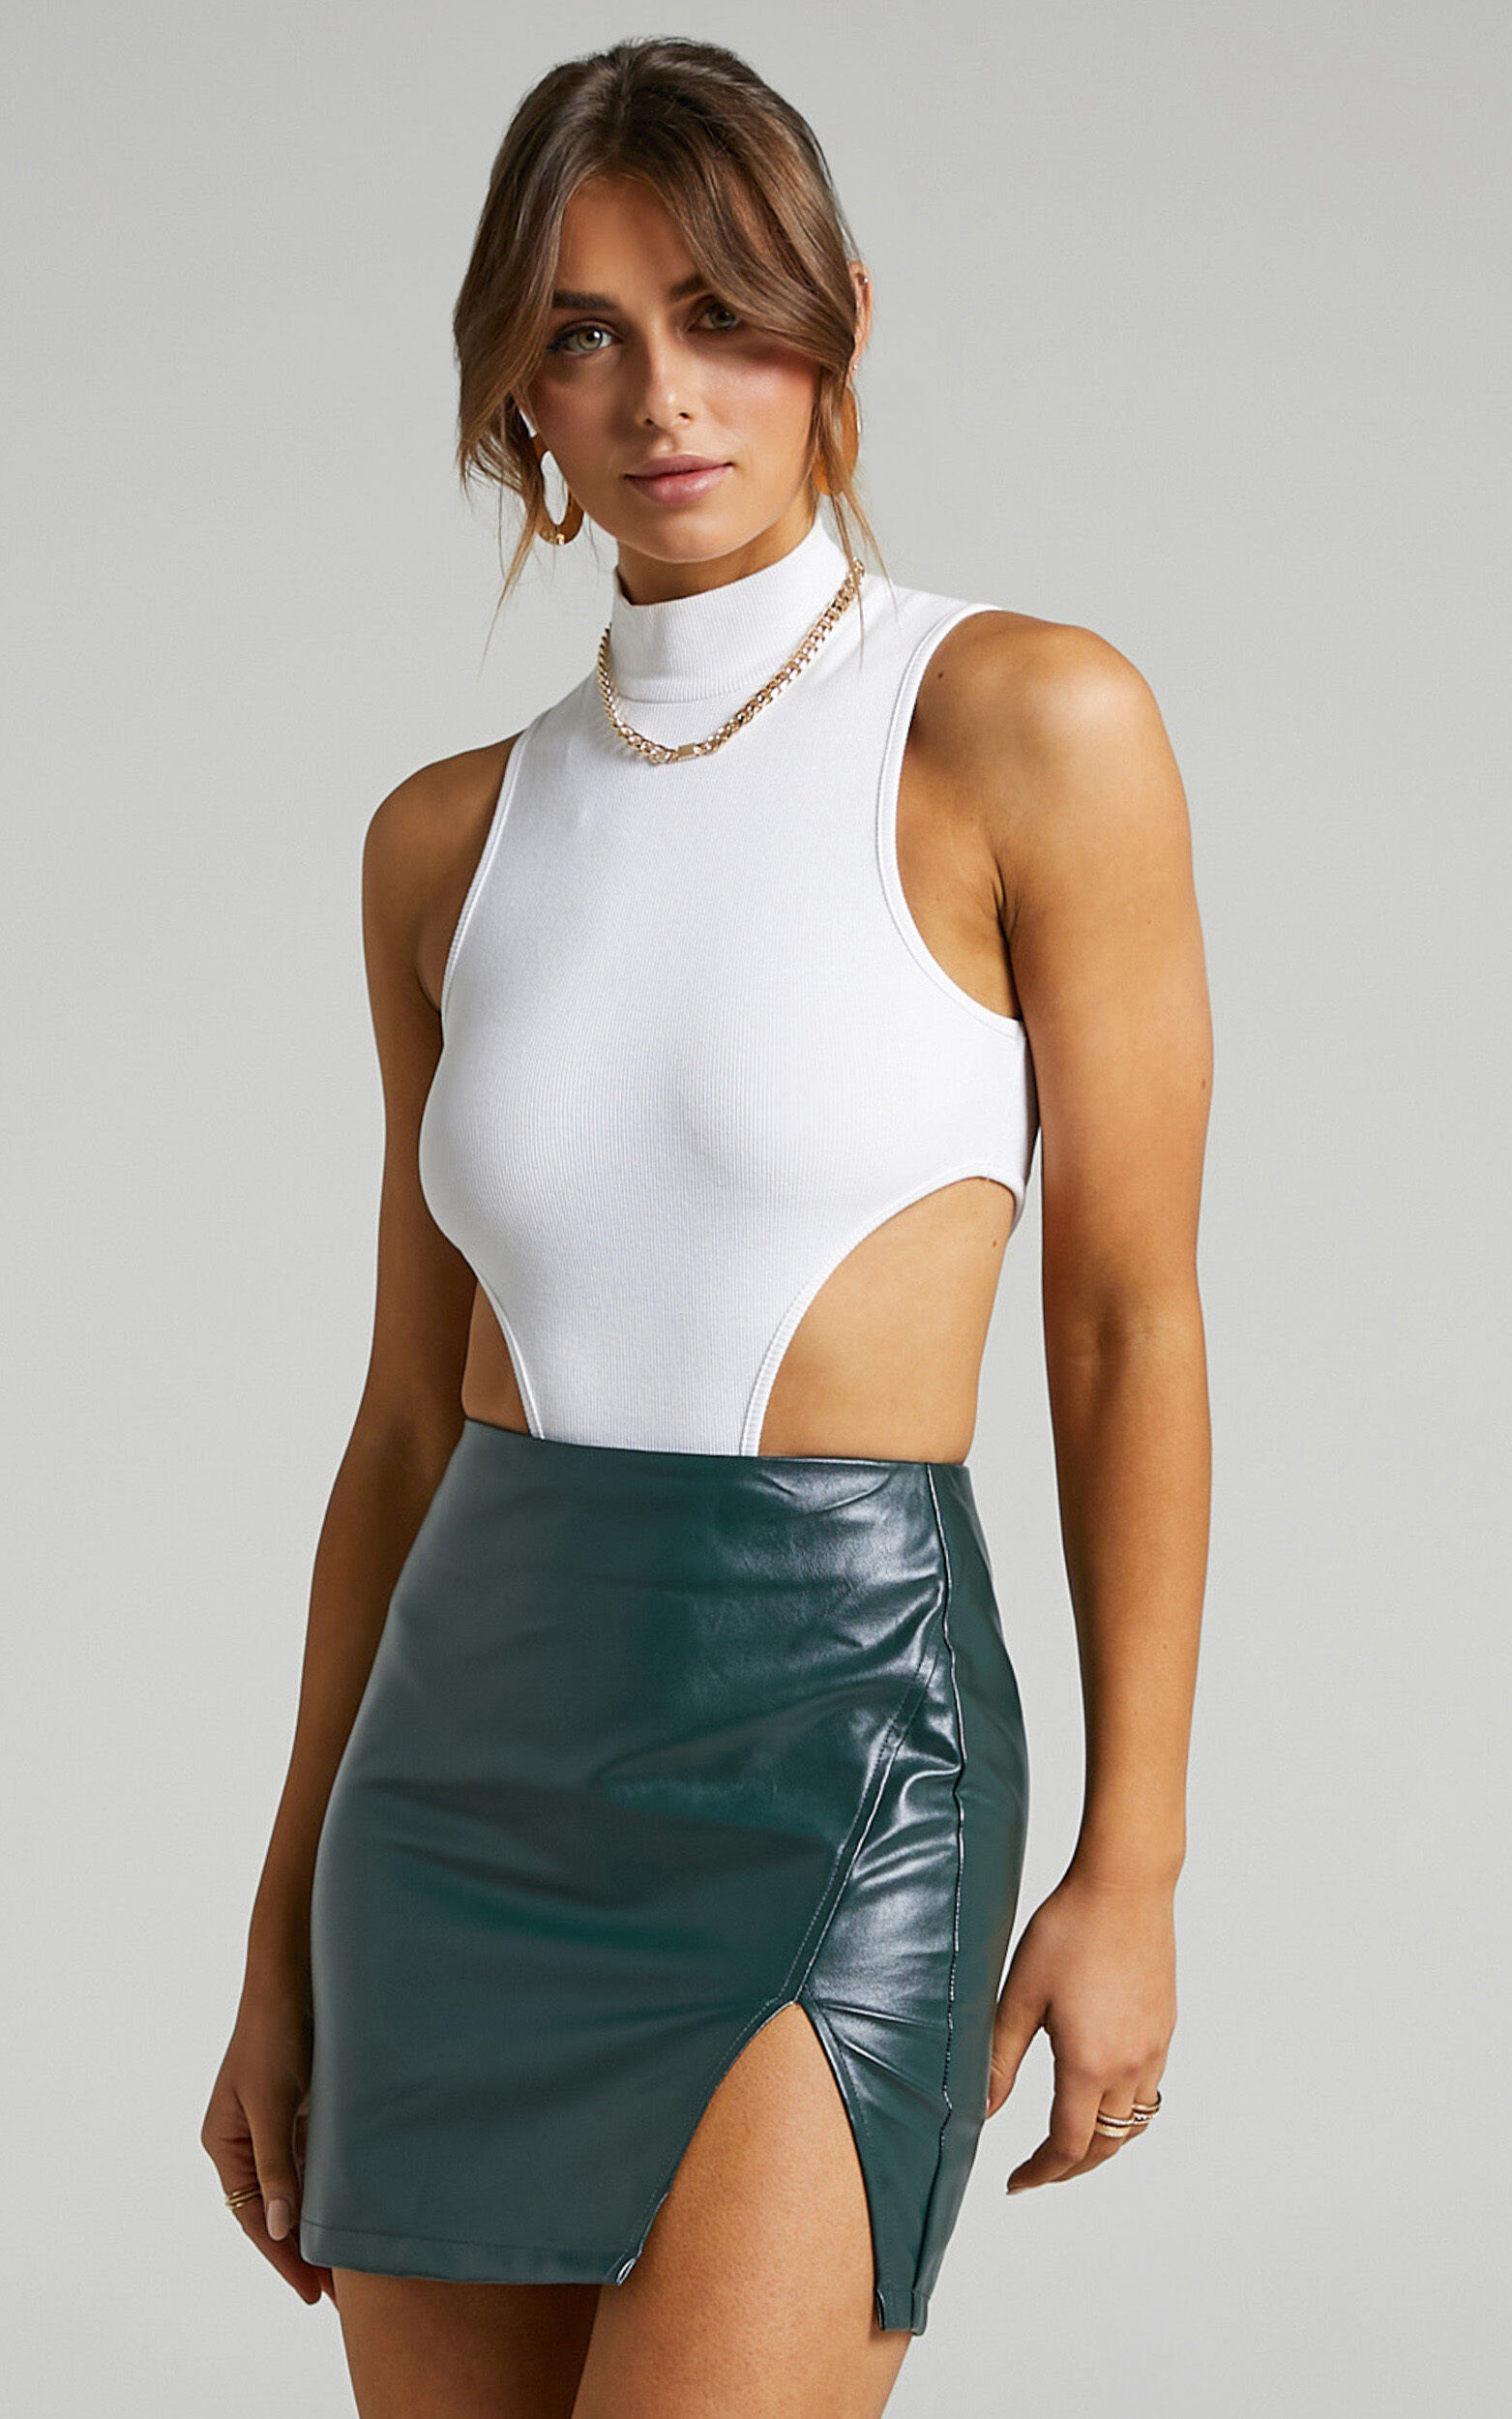 In The Name Of Love  Leatherette Mini Skirt in Emerald Leatherette - 04, GRN2, super-hi-res image number null